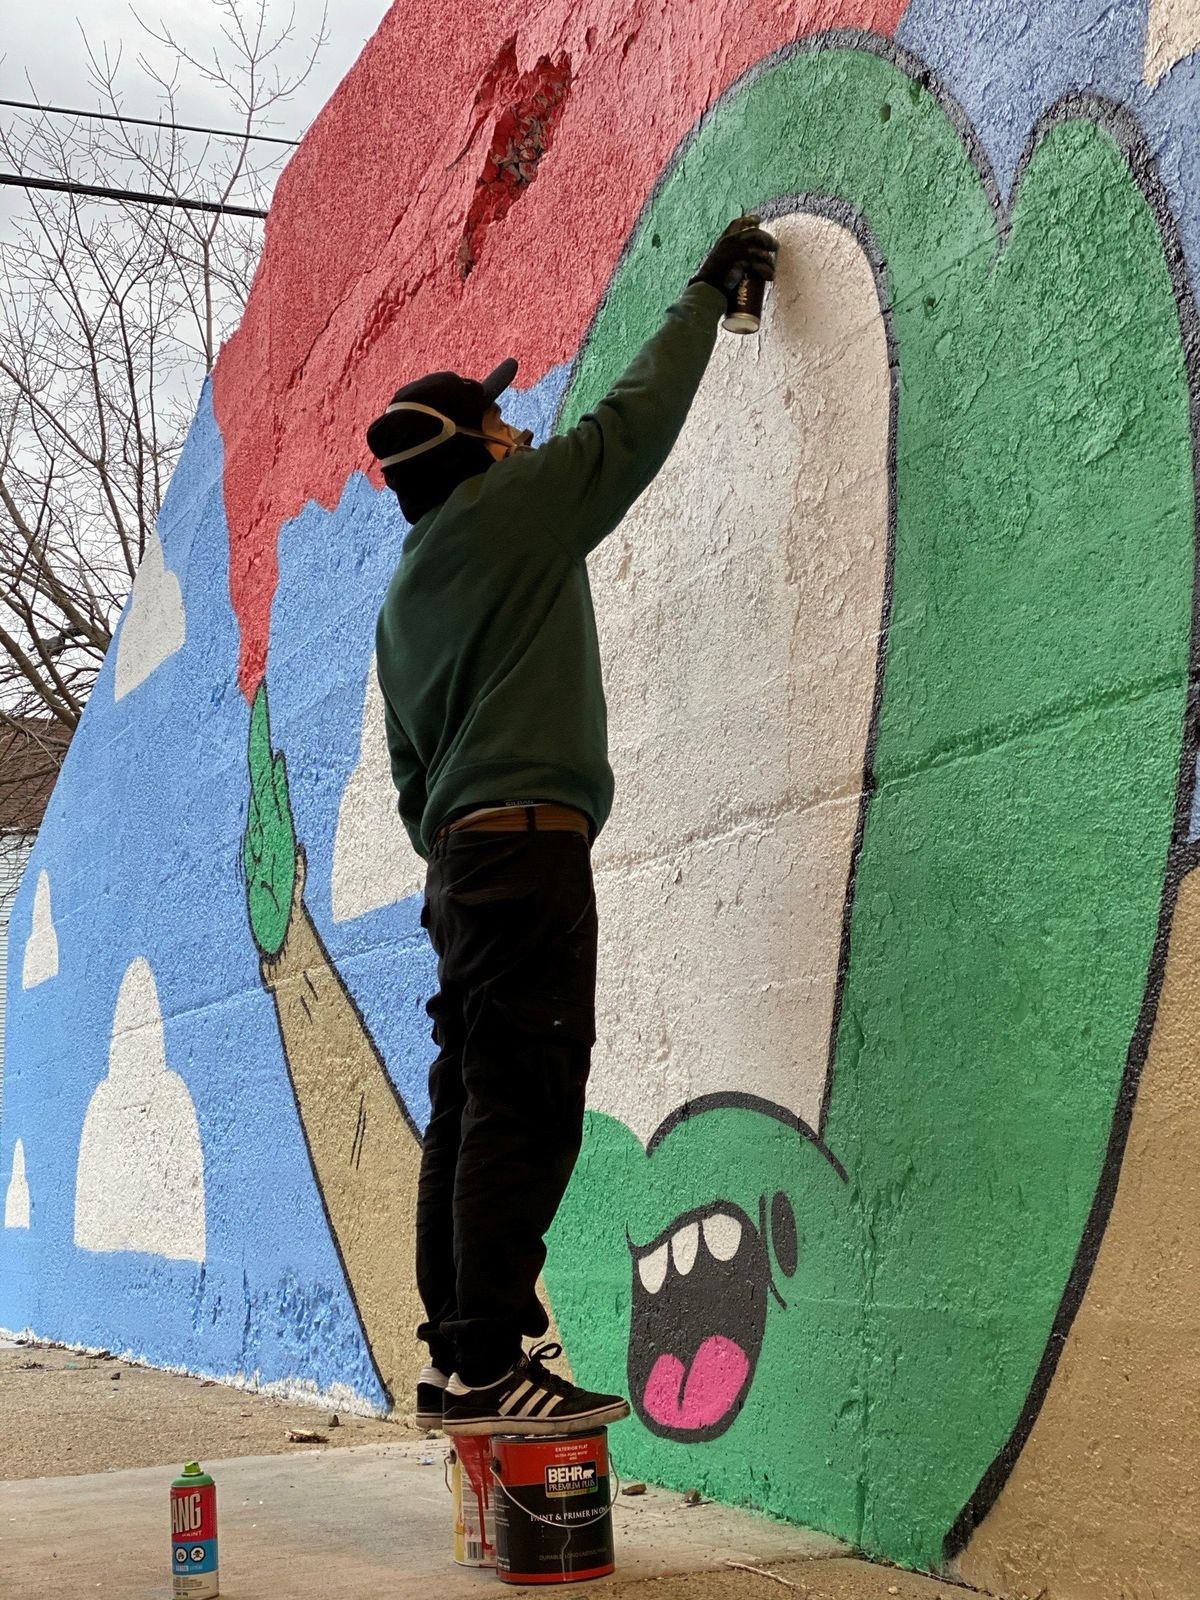 Muralist Manny Gomez's signature character is an alien — which he says is an artistic take on the way some people see Mexican people as illegal aliens.